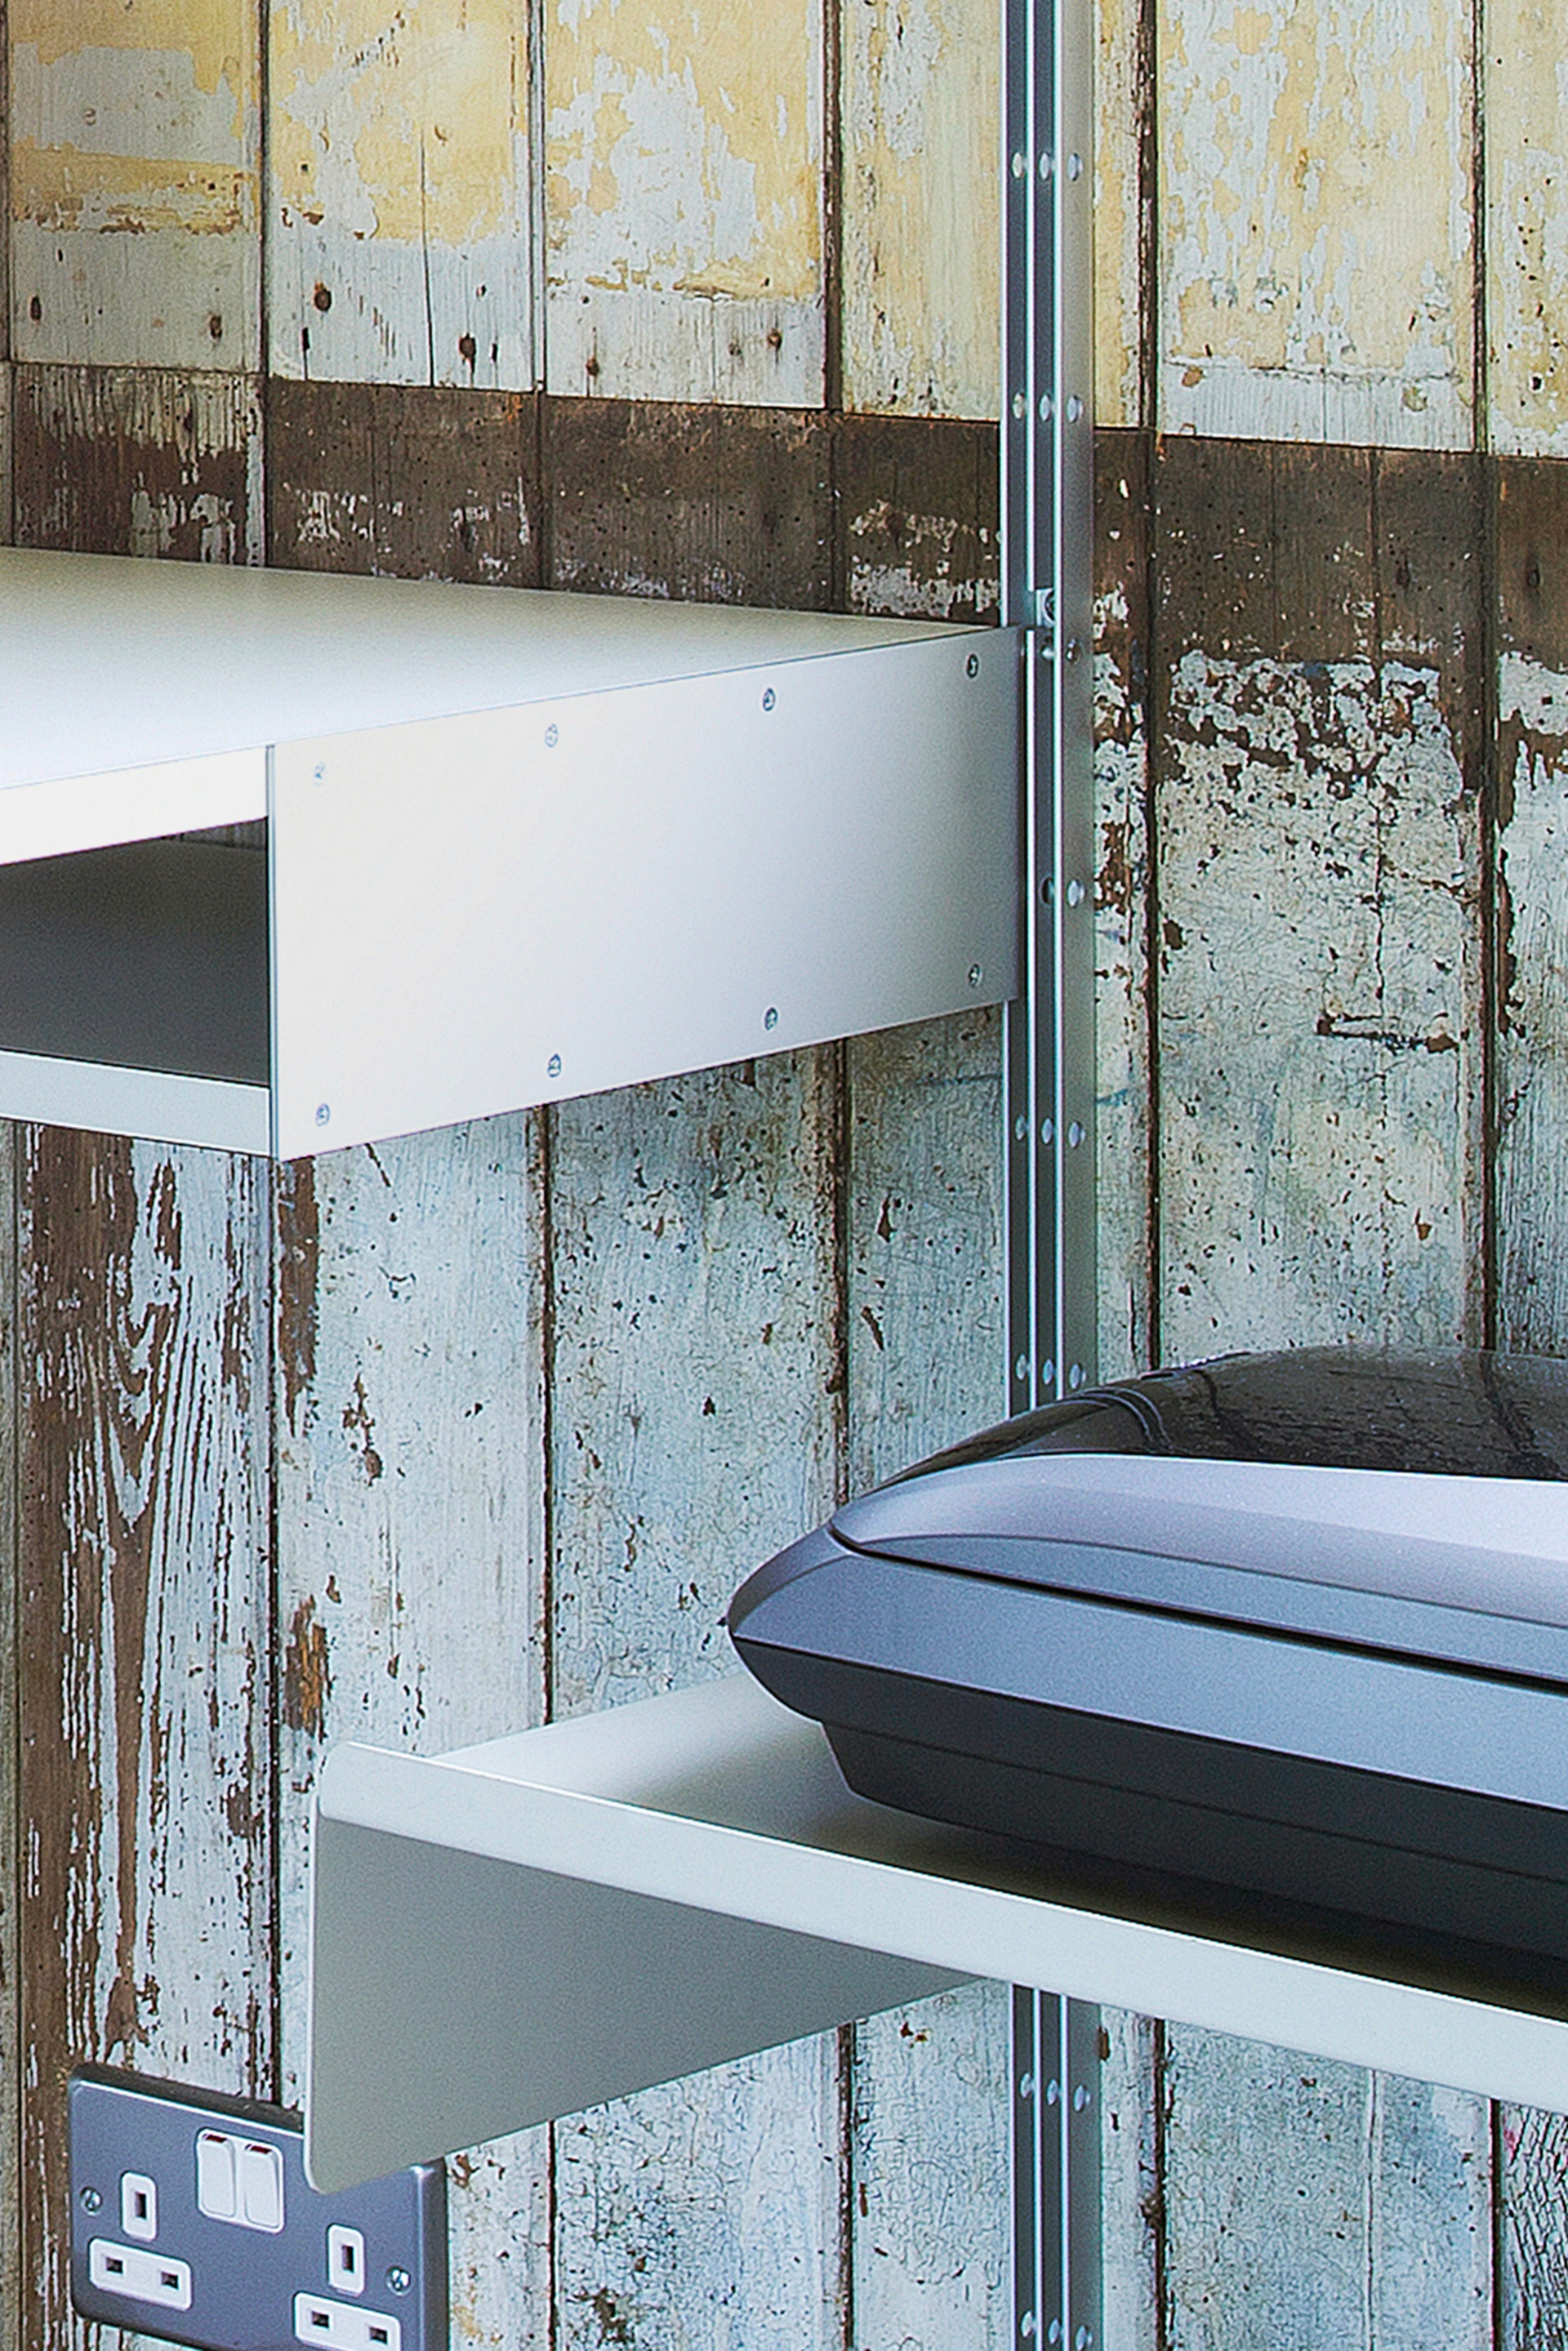 The aluminium pin holds the desk shelf into the E-Track